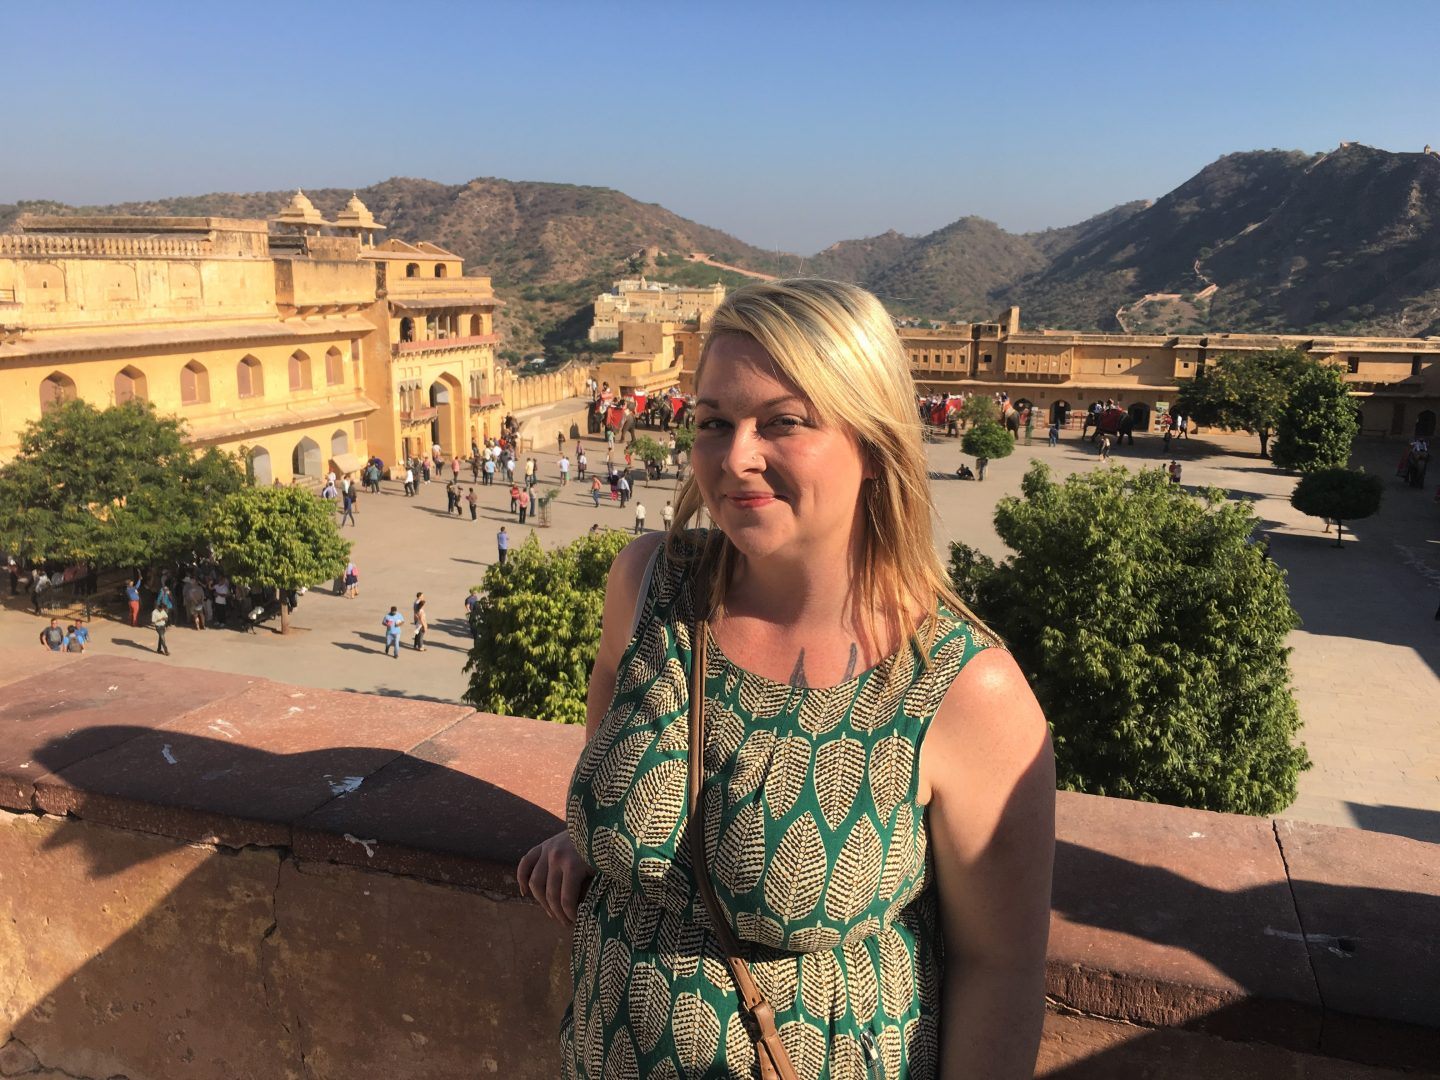 Me at Amber Fort, Jaipur on my visit to India last year